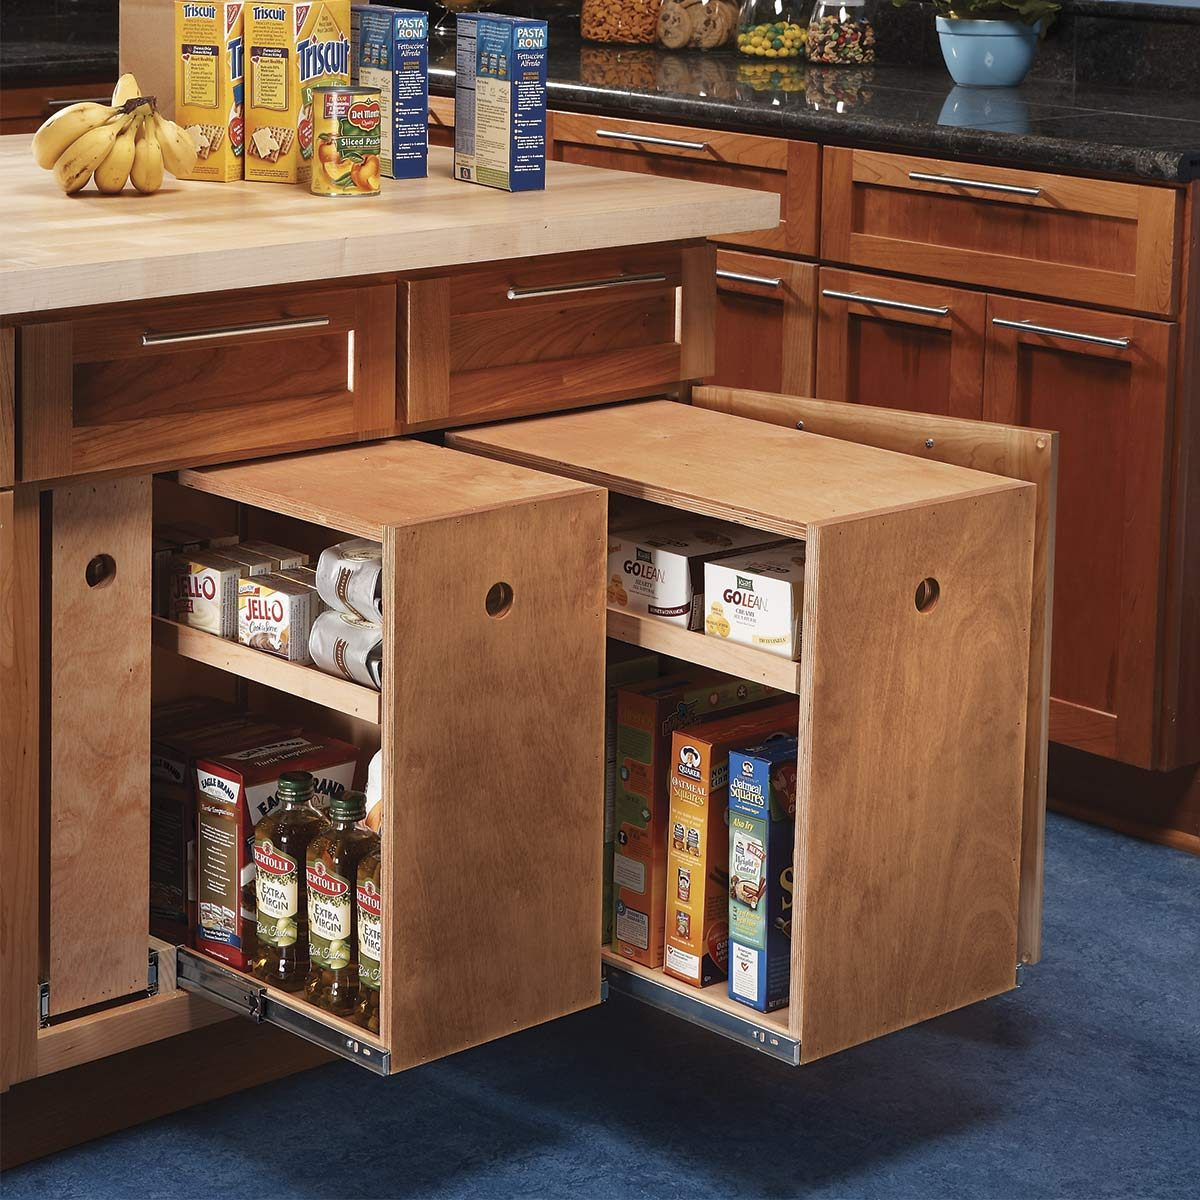 Kitchen Storage Diy Ideas: 30 Cheap Kitchen Cabinet Add-Ons You Can DIY